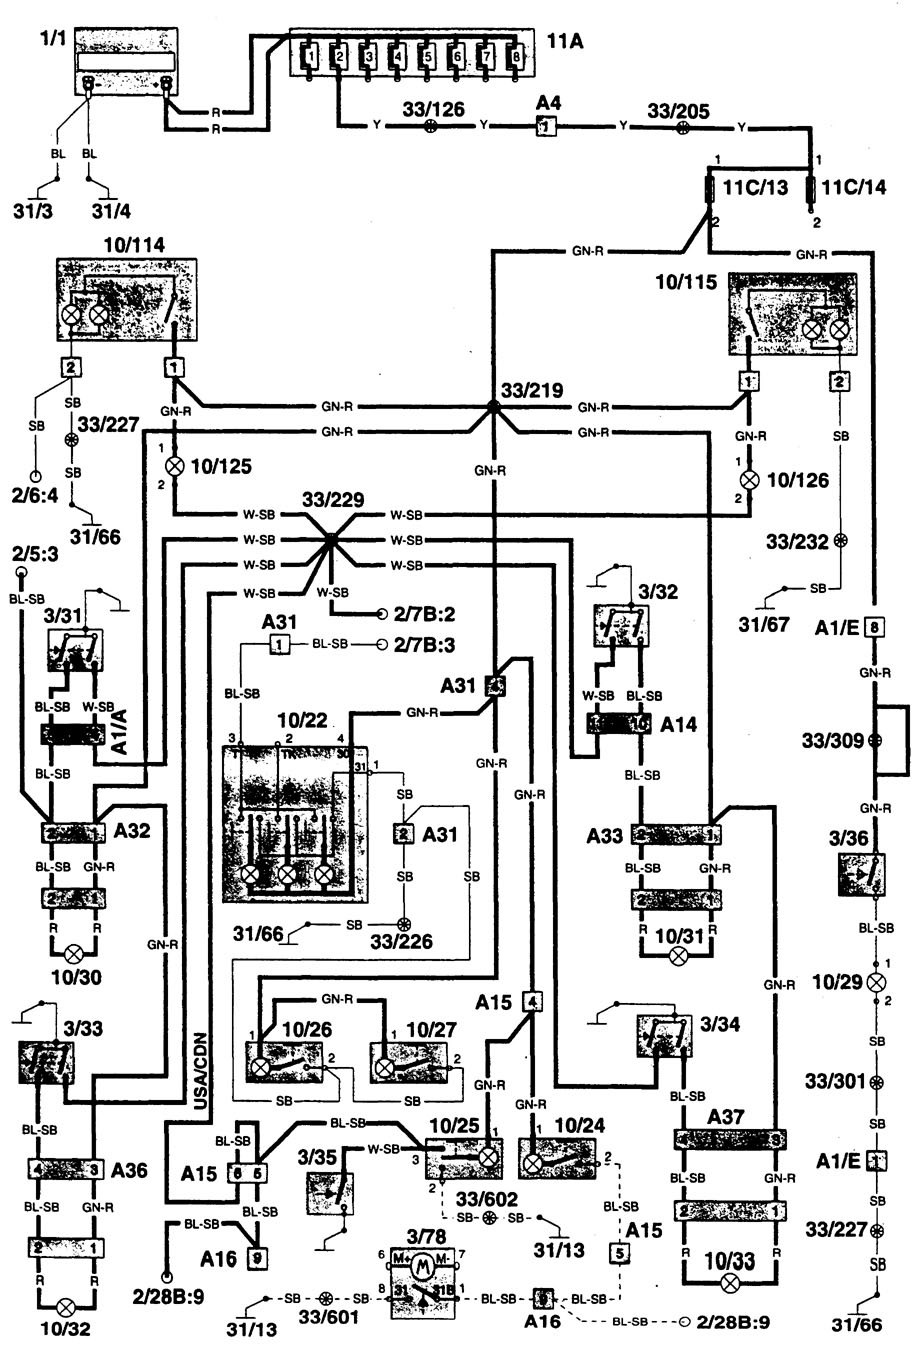 1996 Volvo 960 Engine Diagram Wiring Library Diagrams Interior Lighting Carknowledge